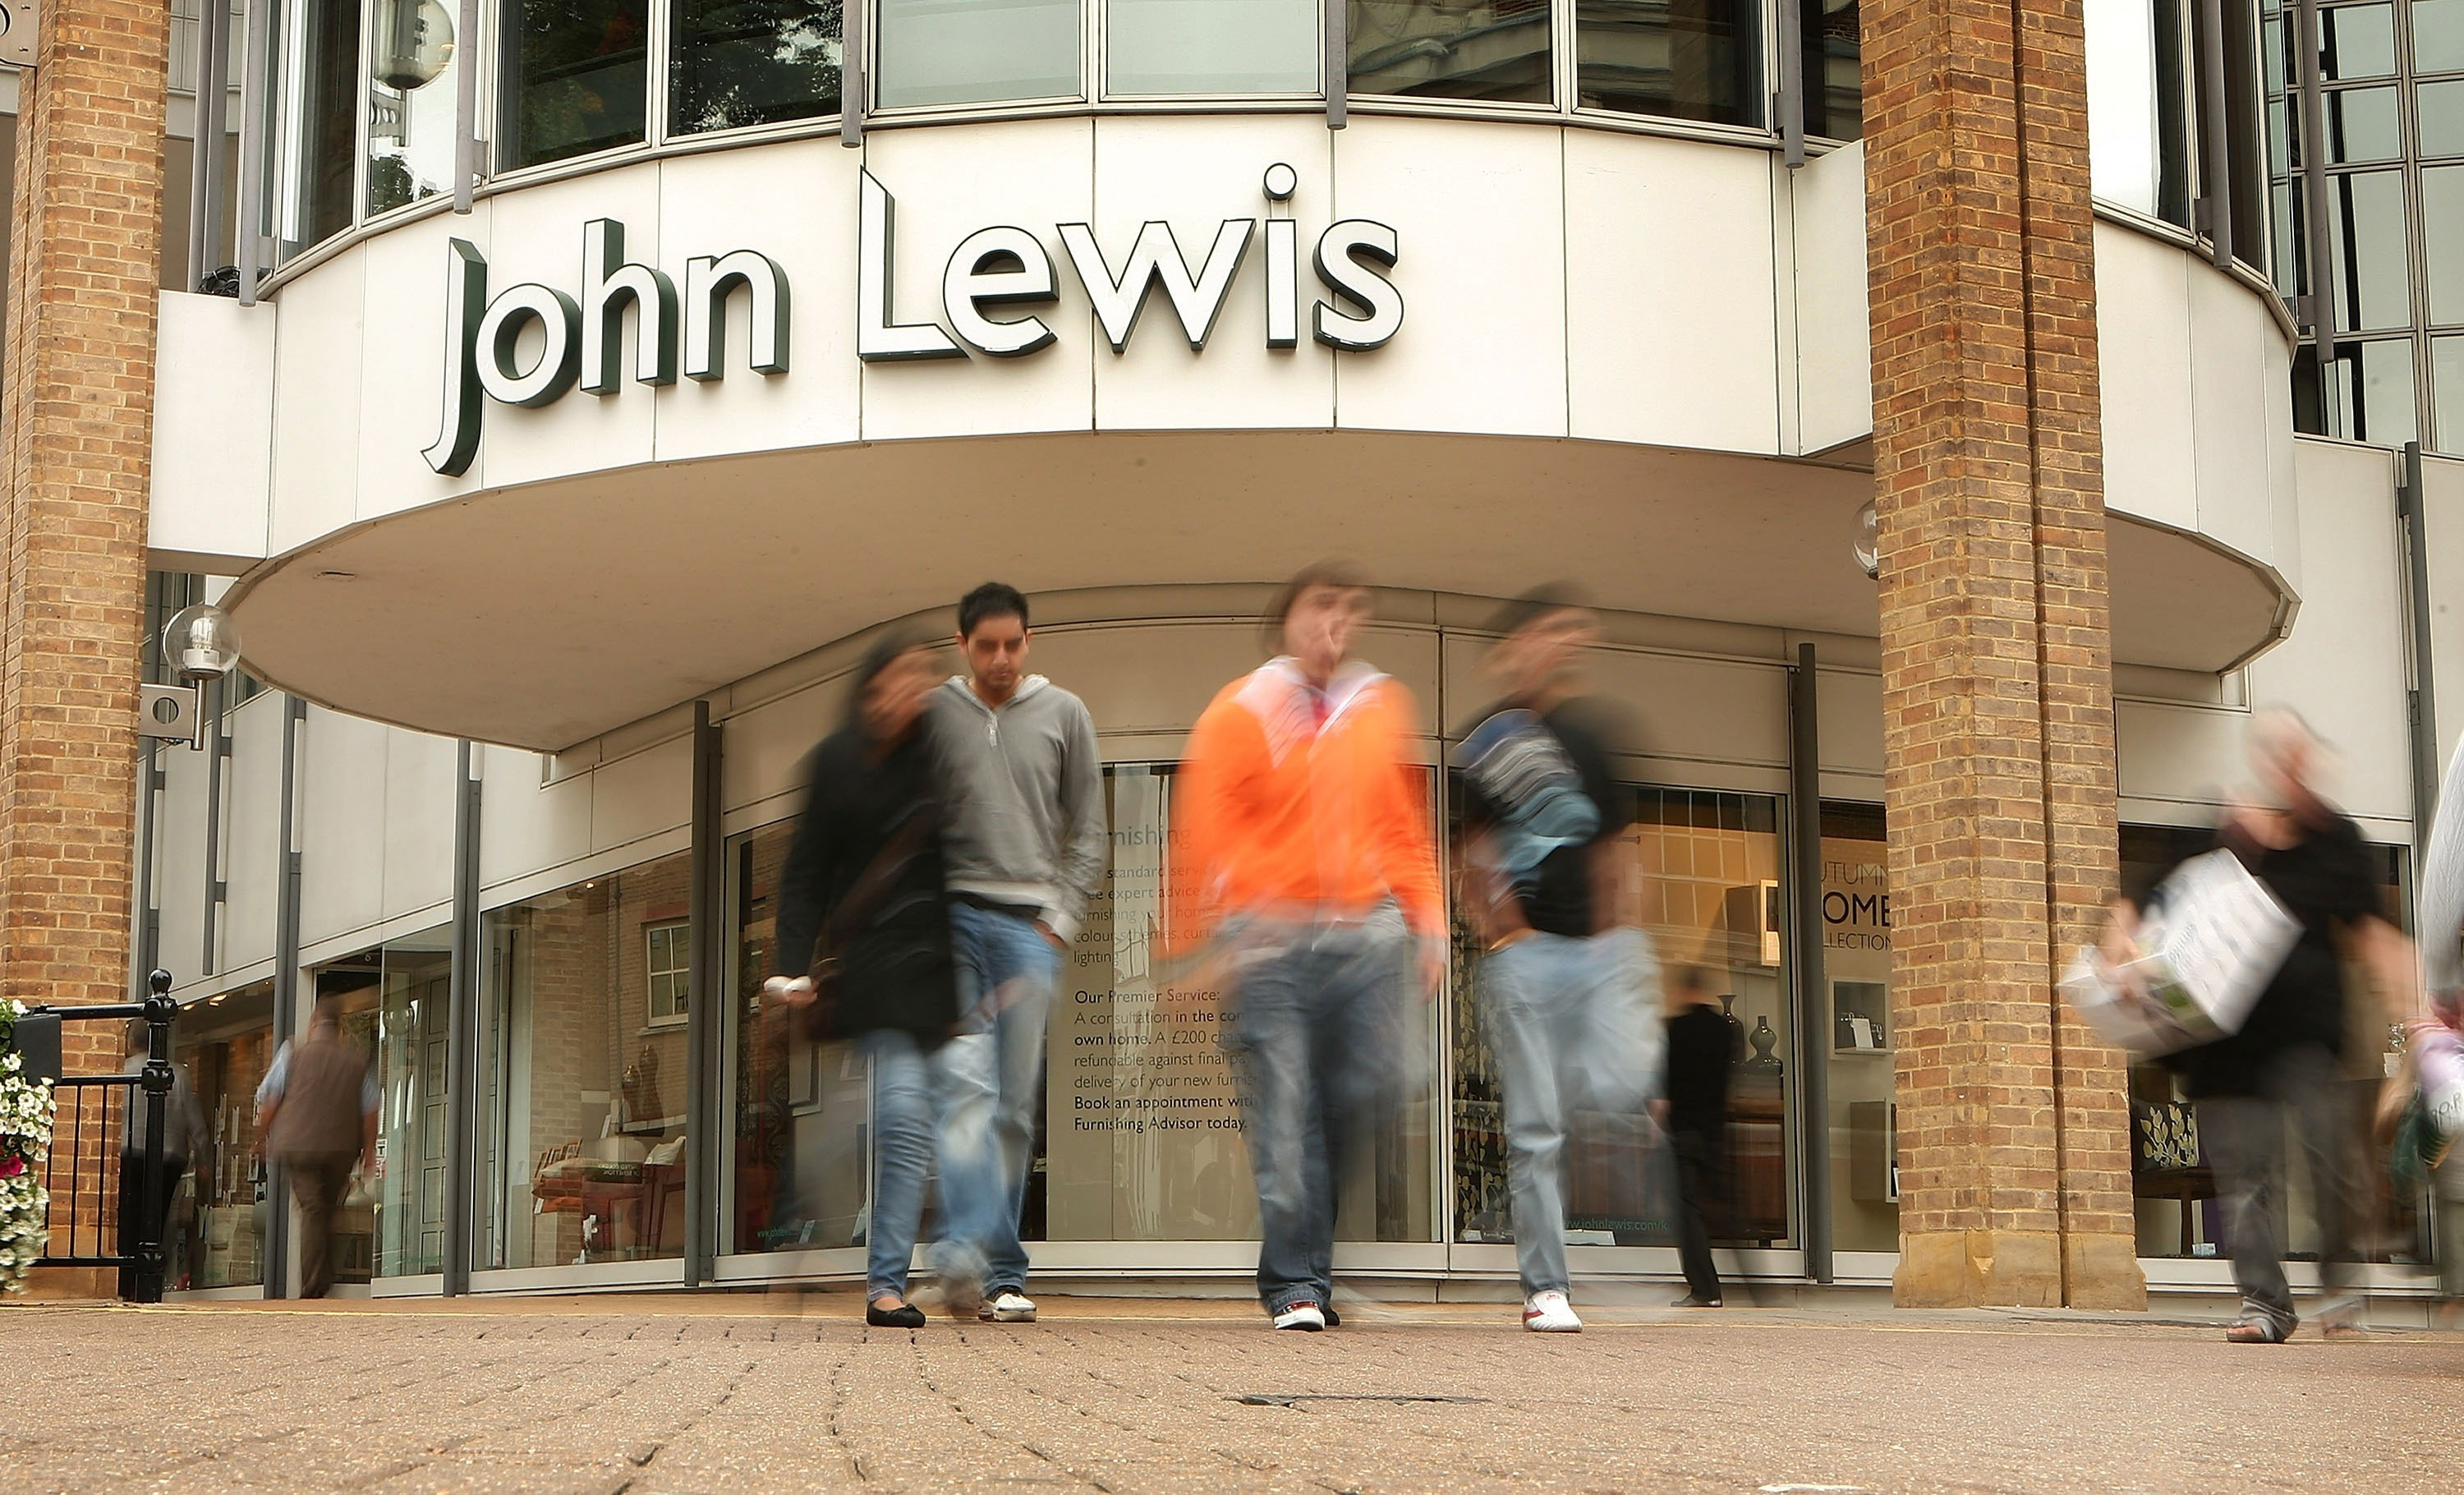 John Lewis shop. Getty Images, TG